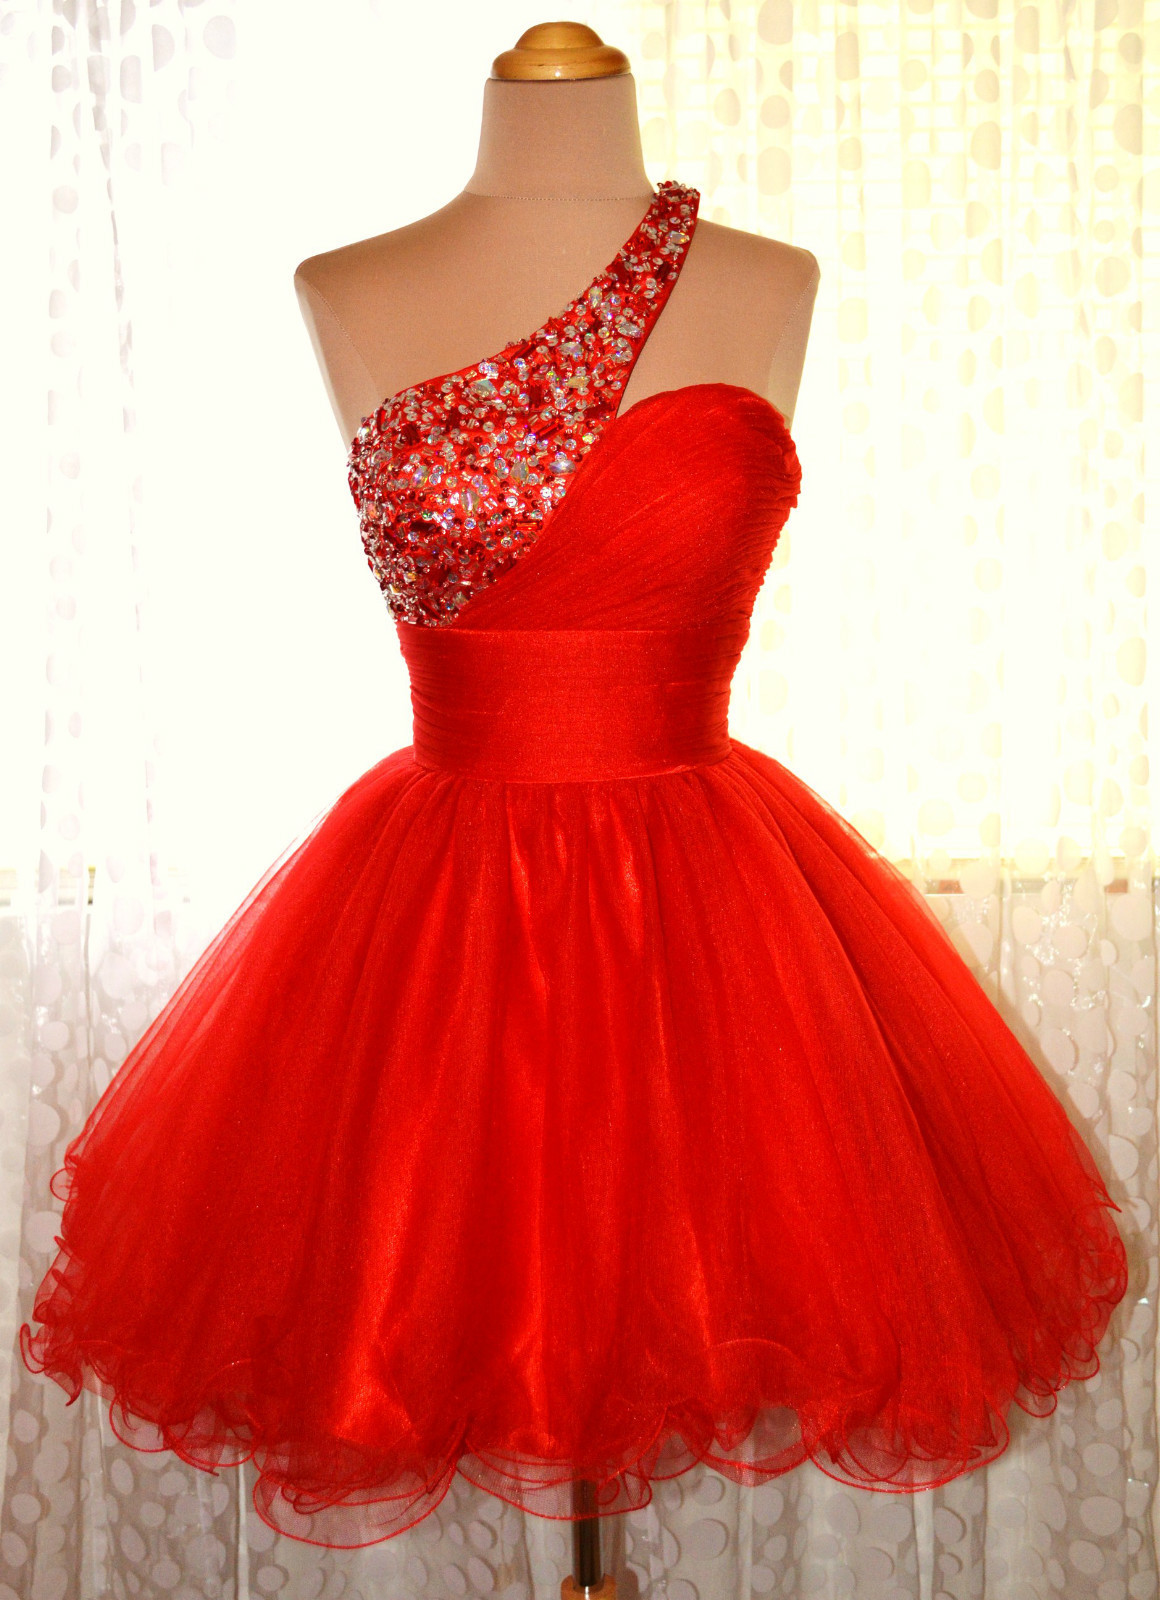 Where is a good place to buy homecoming dresses